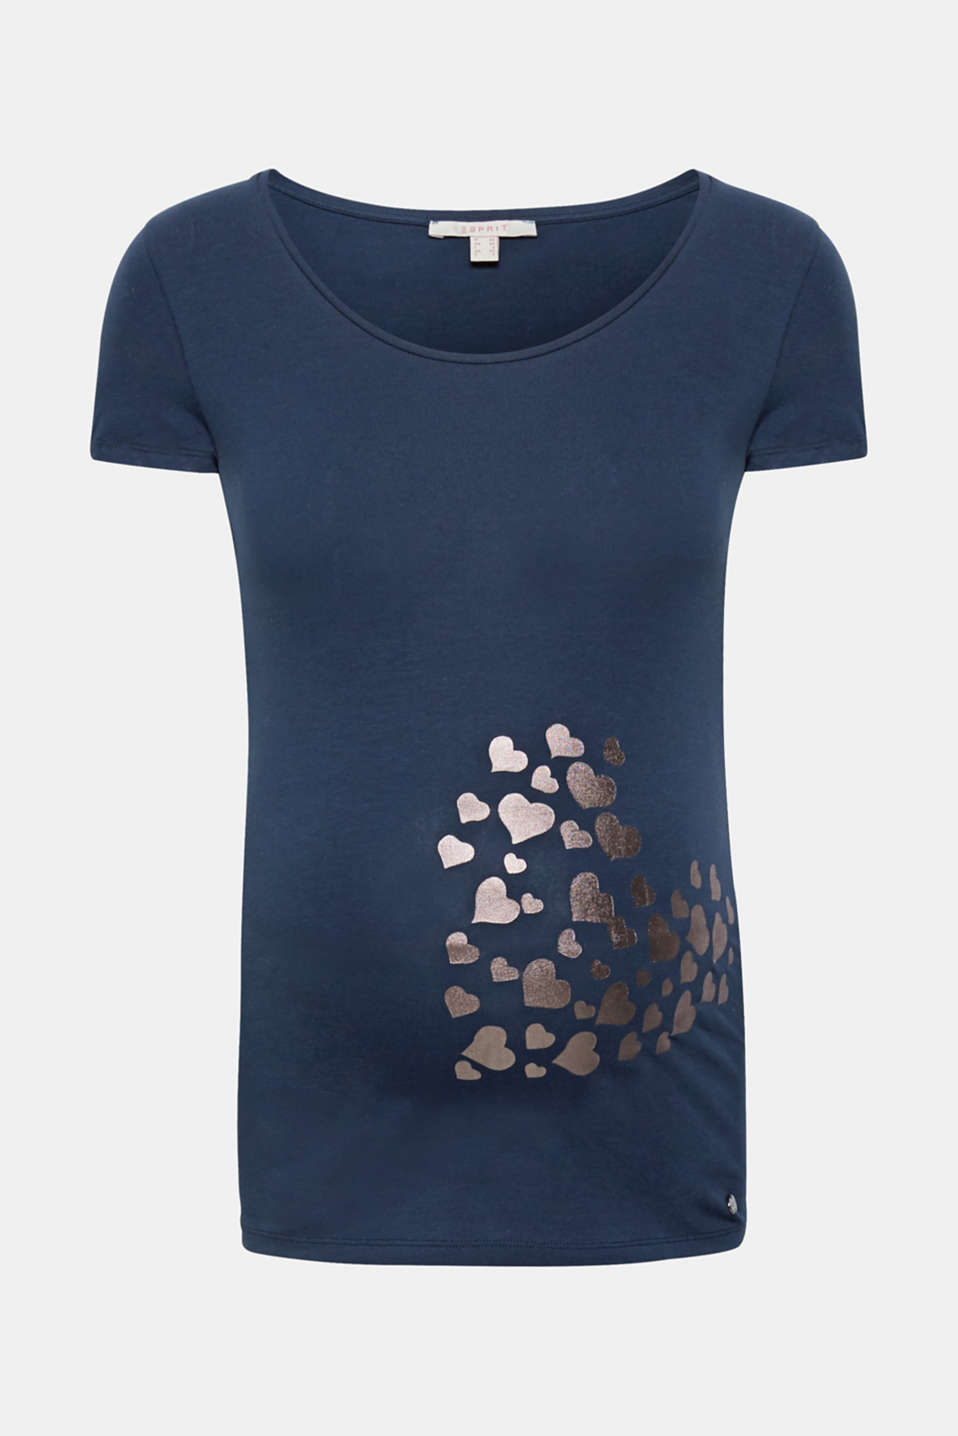 Pretty prints sweeten our day - heart-shaped here on the front of this comfy stretch T-shirt!